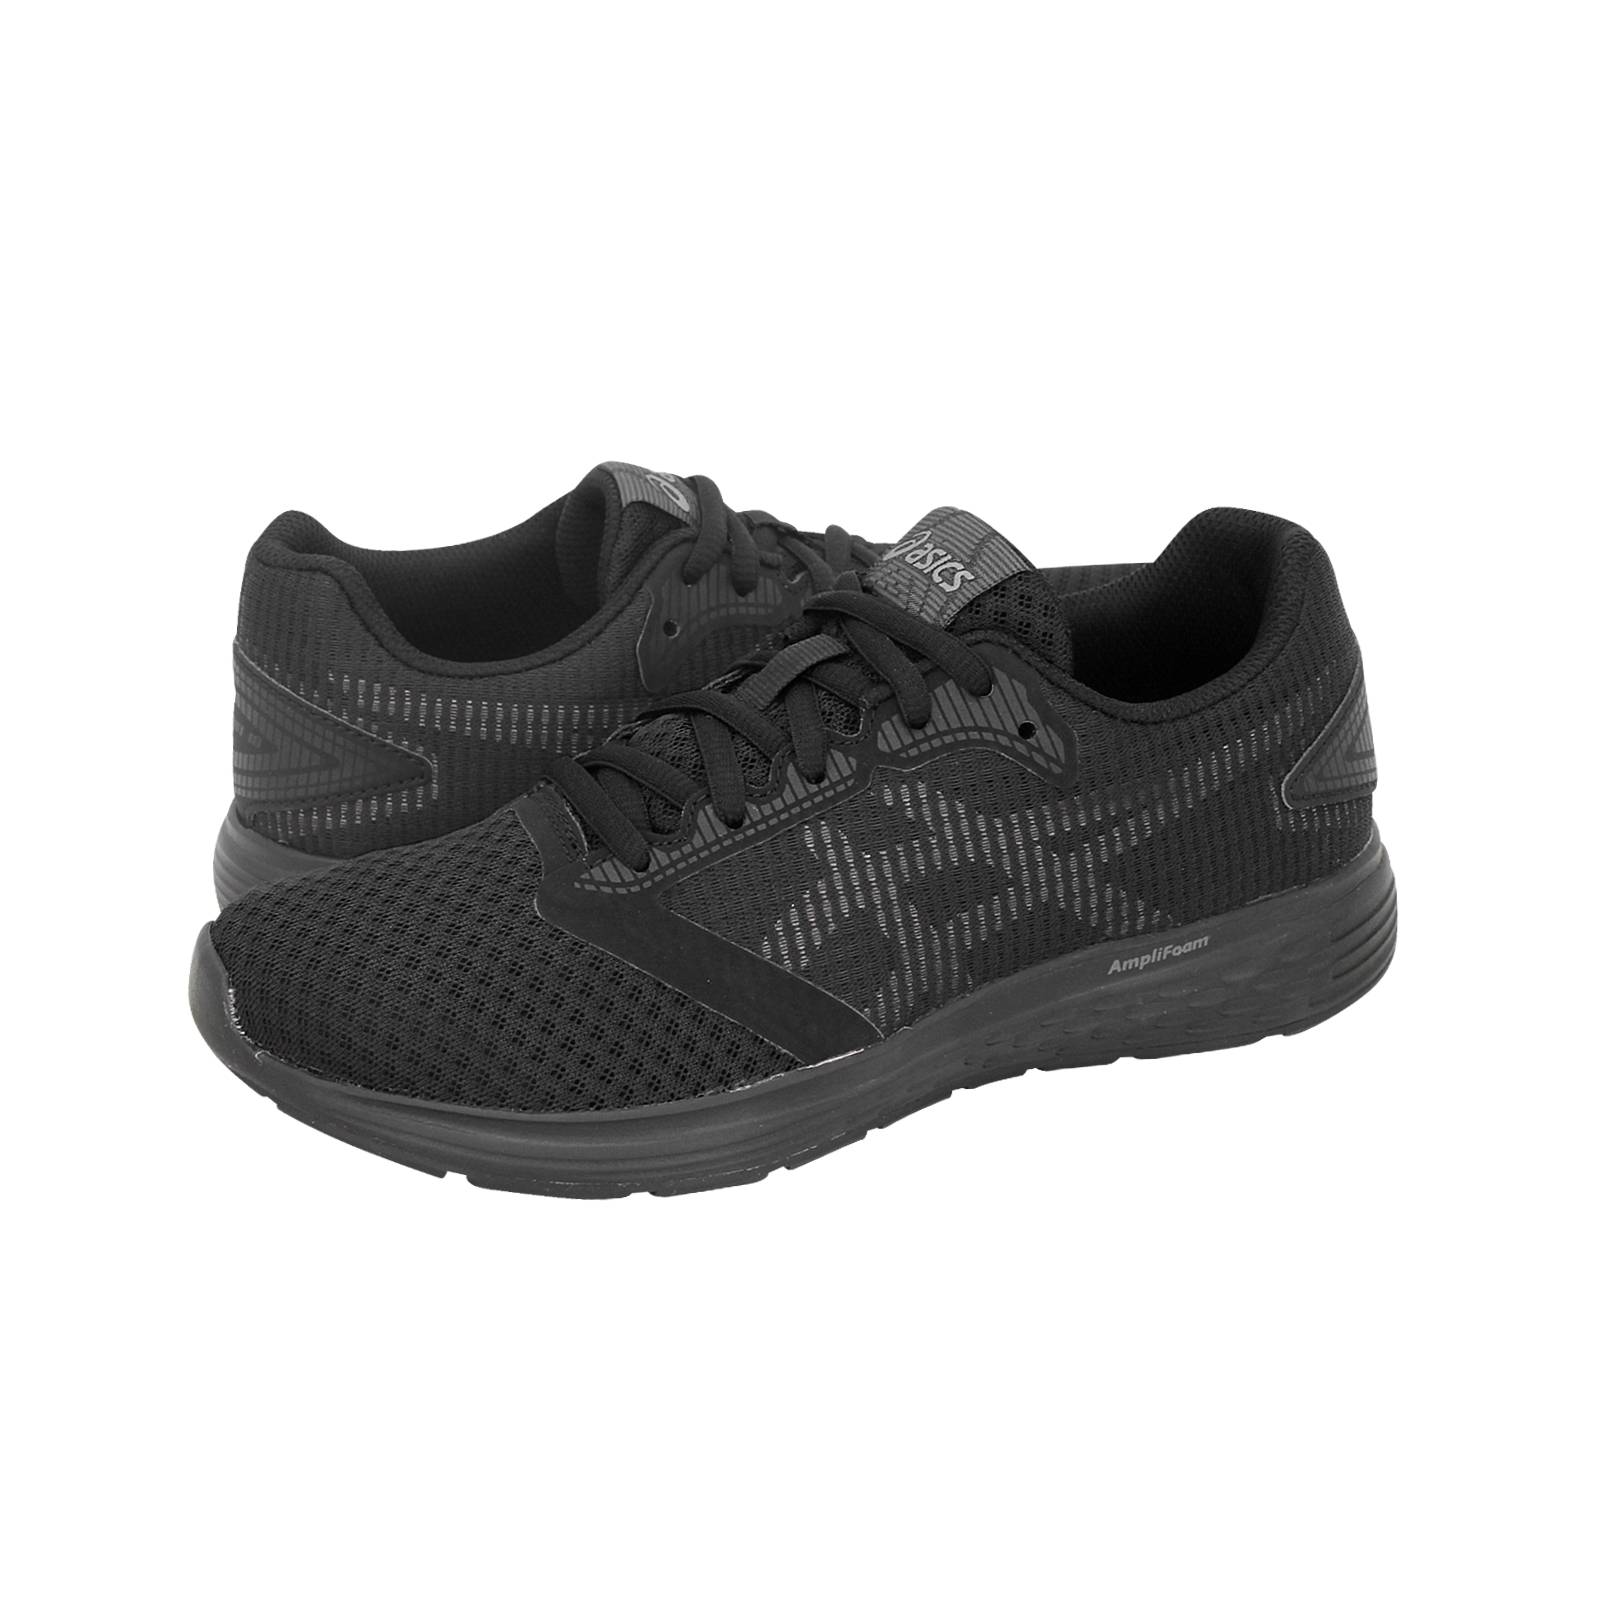 52858230572 Patriot 10 GS Lite-Show - Asics Athletic kids  shoes made of fabric ...